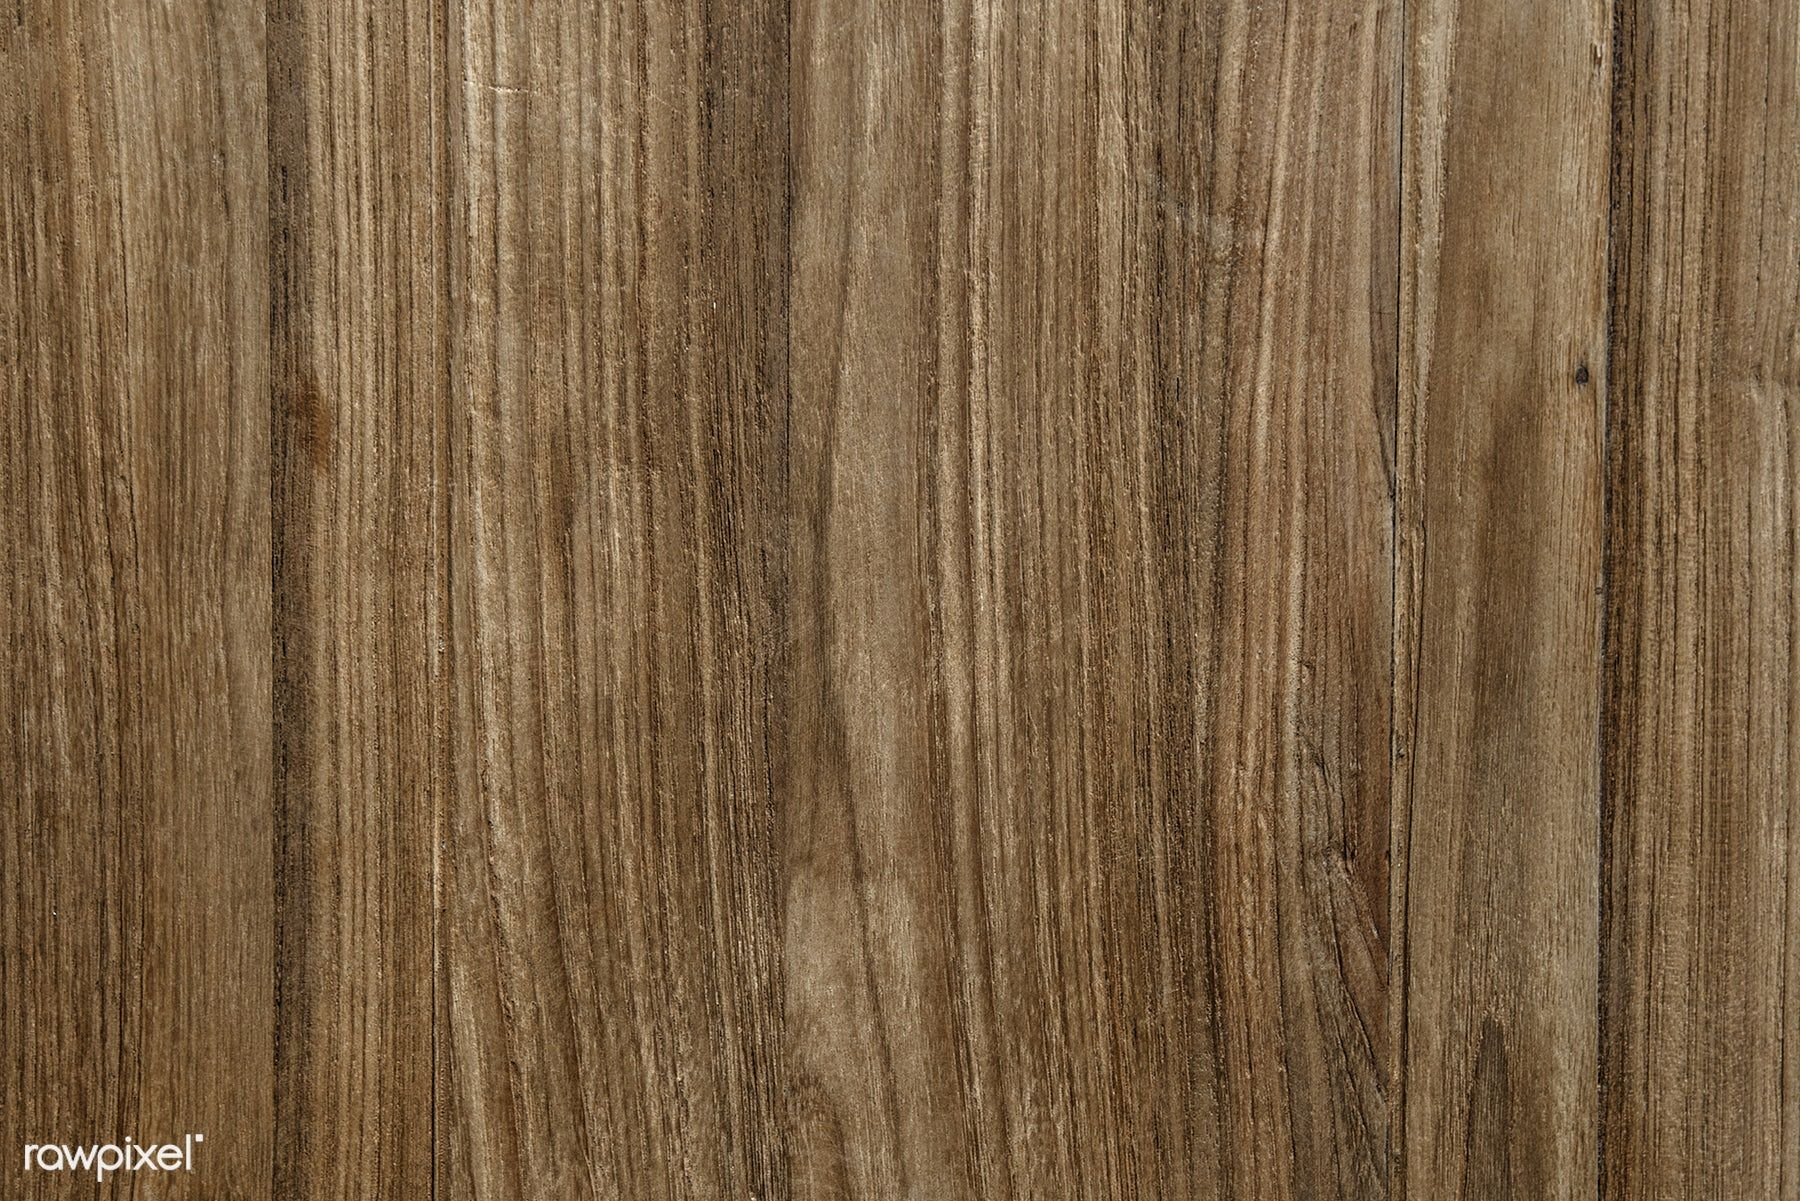 Rustic Wood Panel Check More Free Background At Www Rawpixel Com